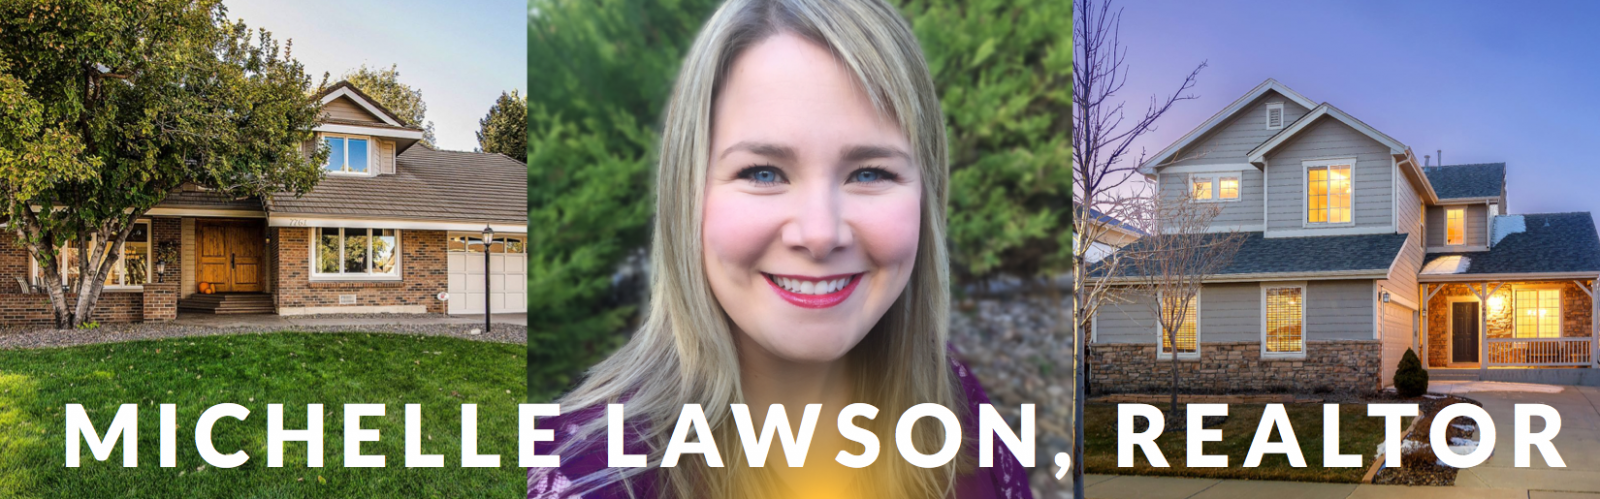 Michelle Lawson, Realtor